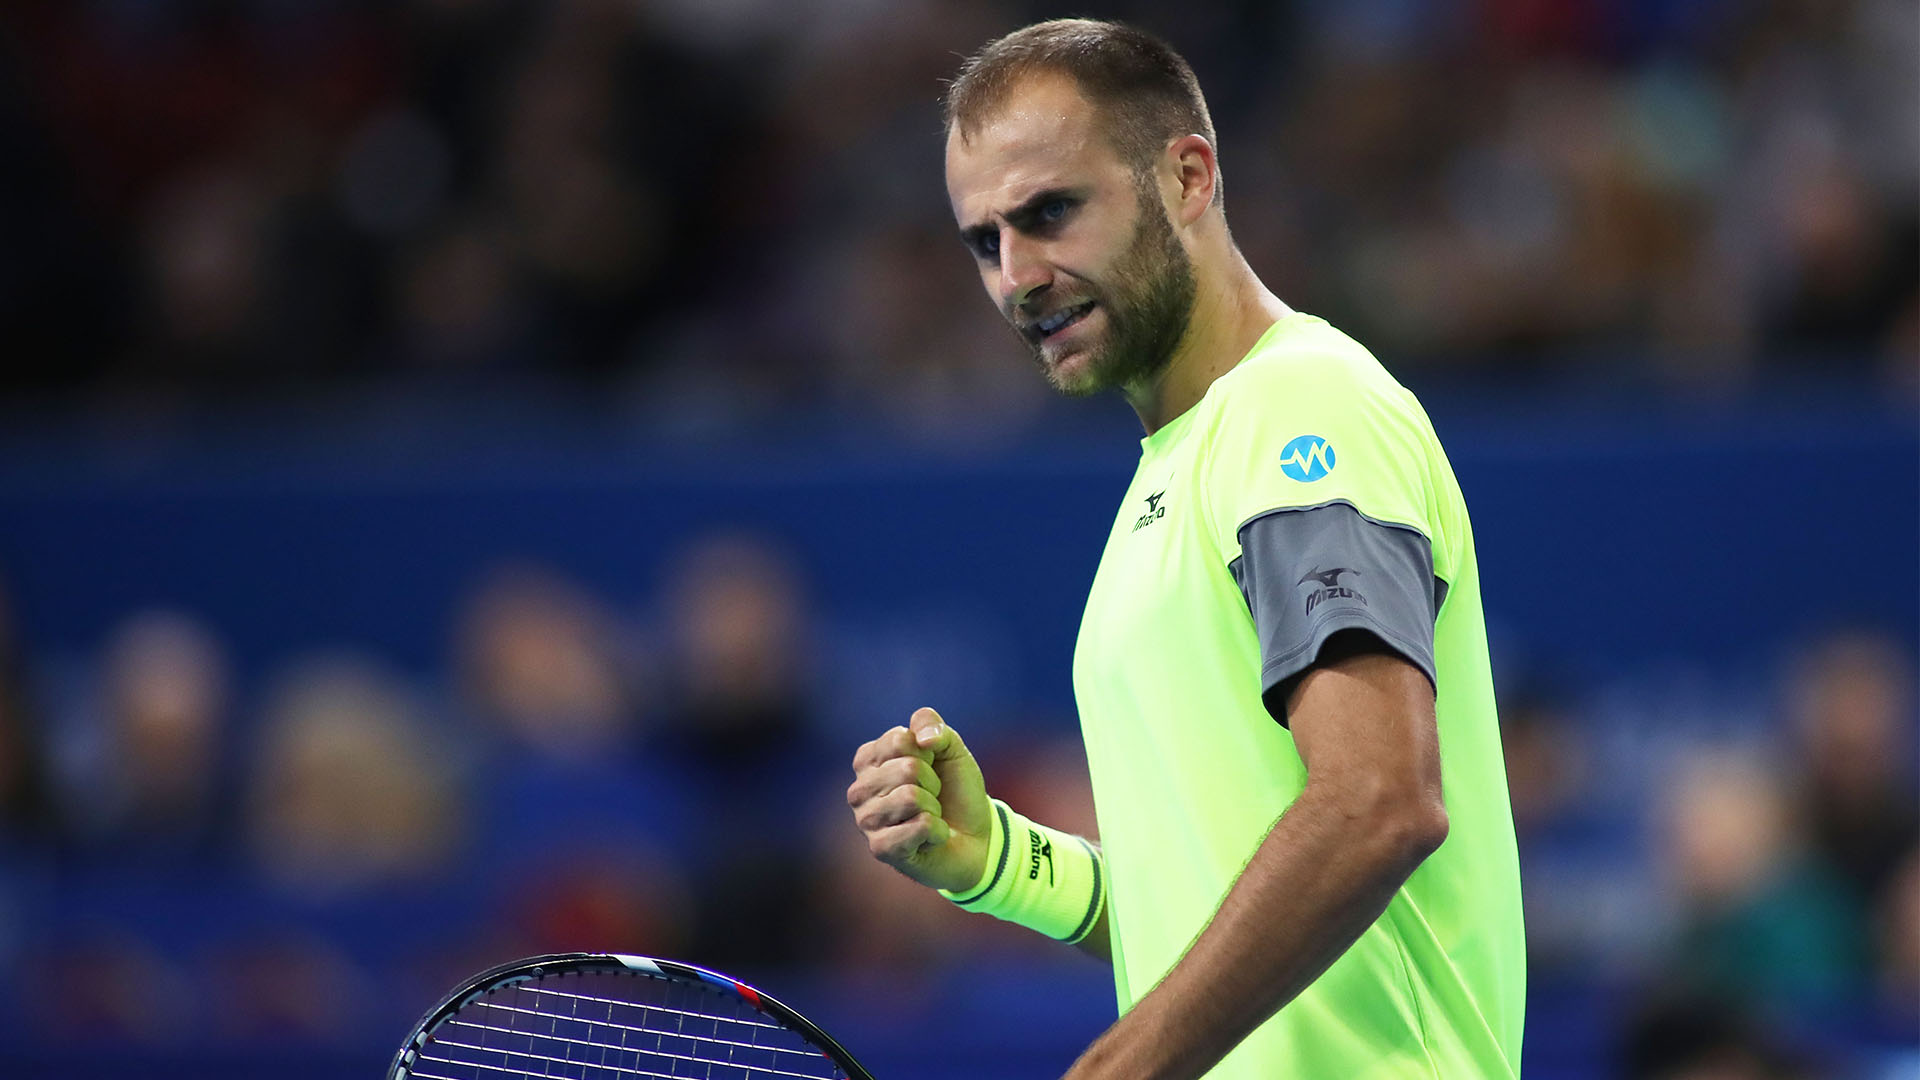 From a professional to a rookie: Marius Copil's advice on choosing a tennis career